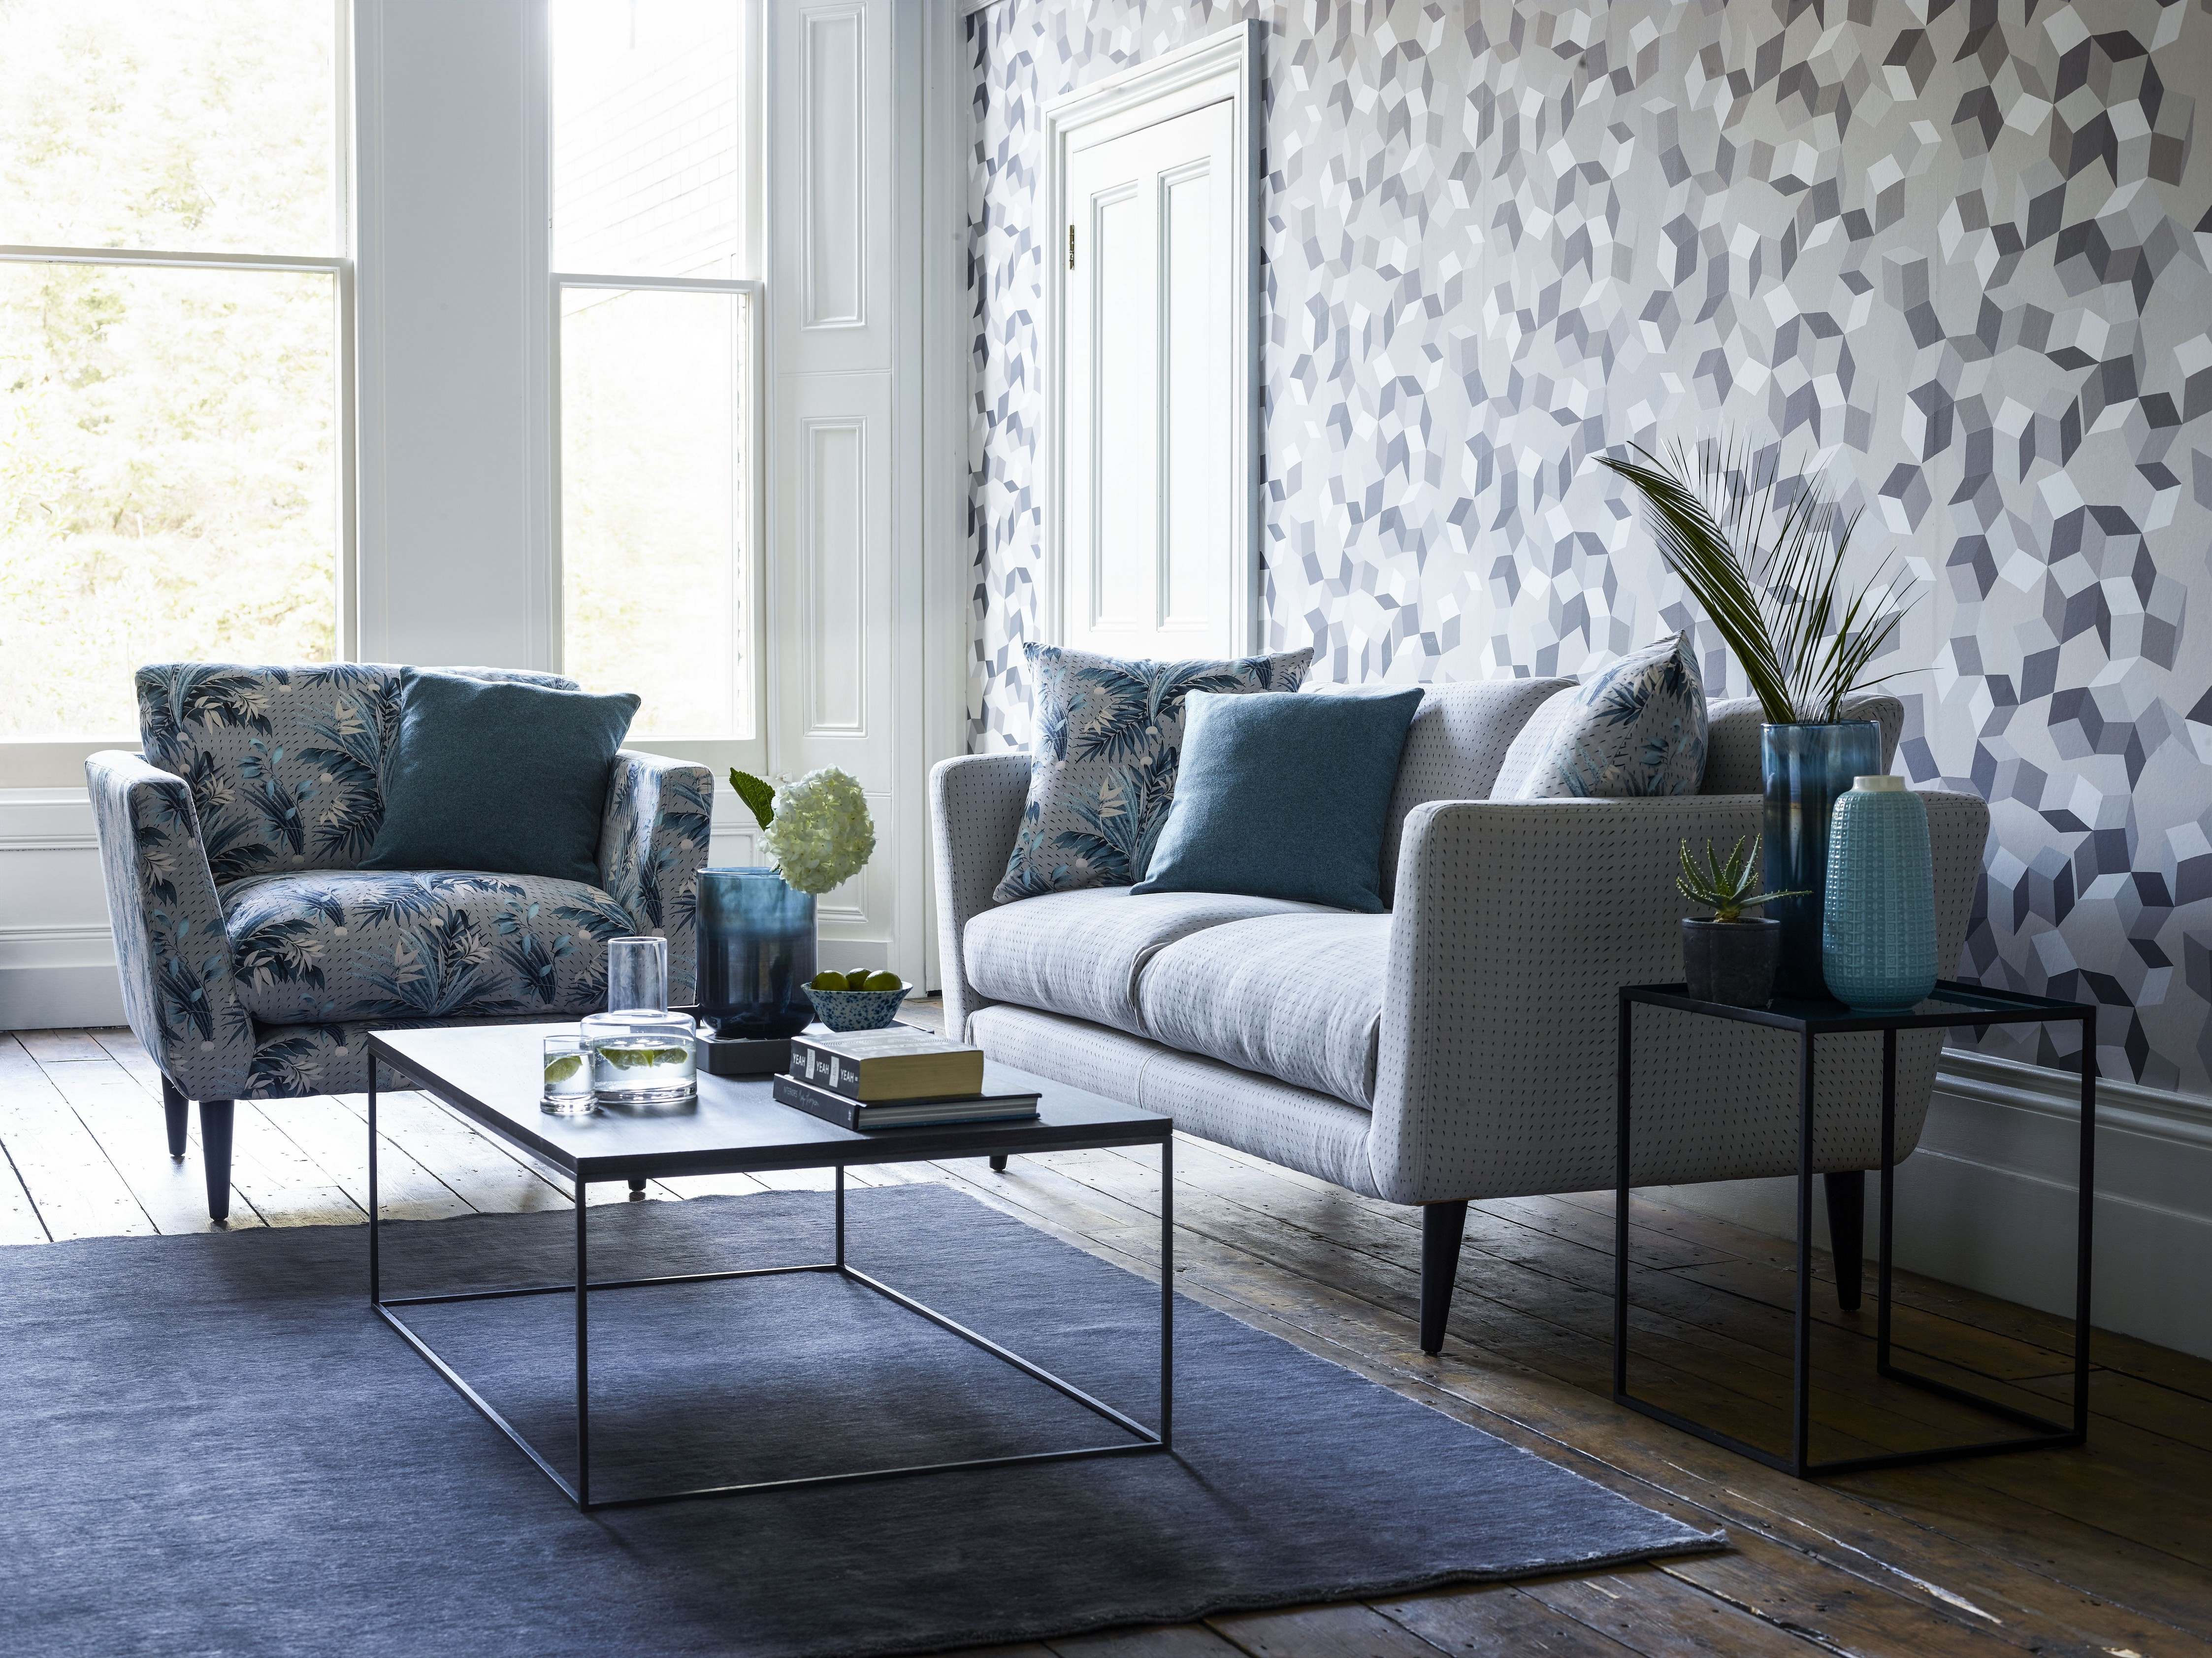 Exceptionnel Sofa.com Holly Armchair In Anna Glover Paradise Mineral, Holly Sofa In Anna  Glover Raindance (2)